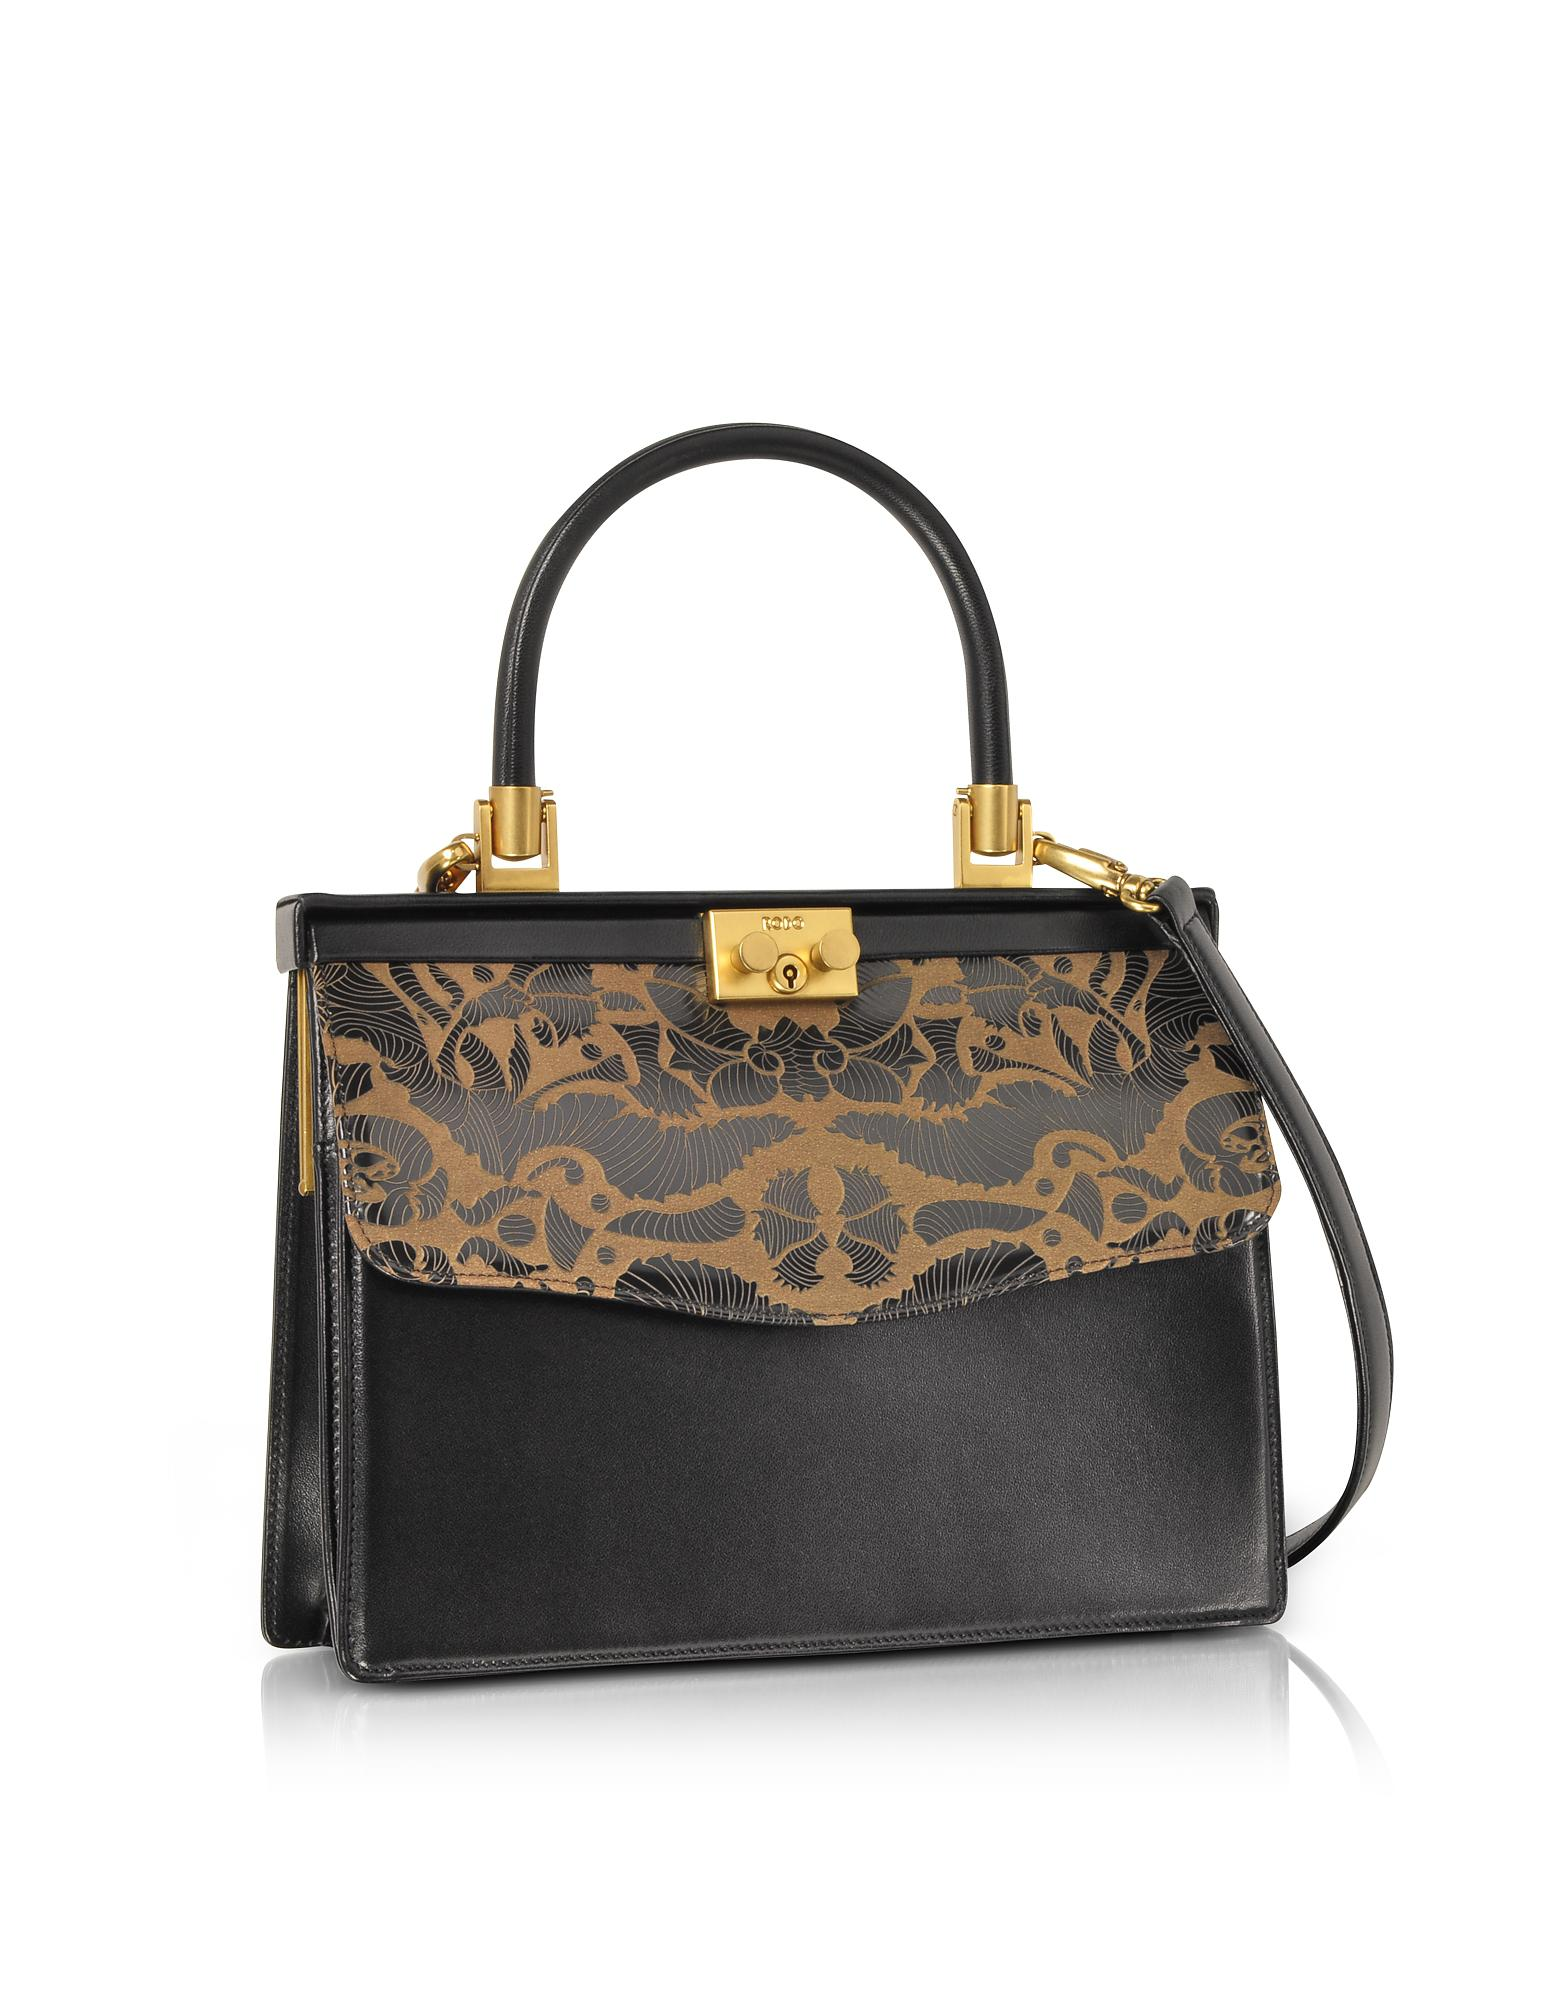 e8a4665c526c Rodo Laser Printed Leather Top Handle Satchel Bag in Black - Lyst